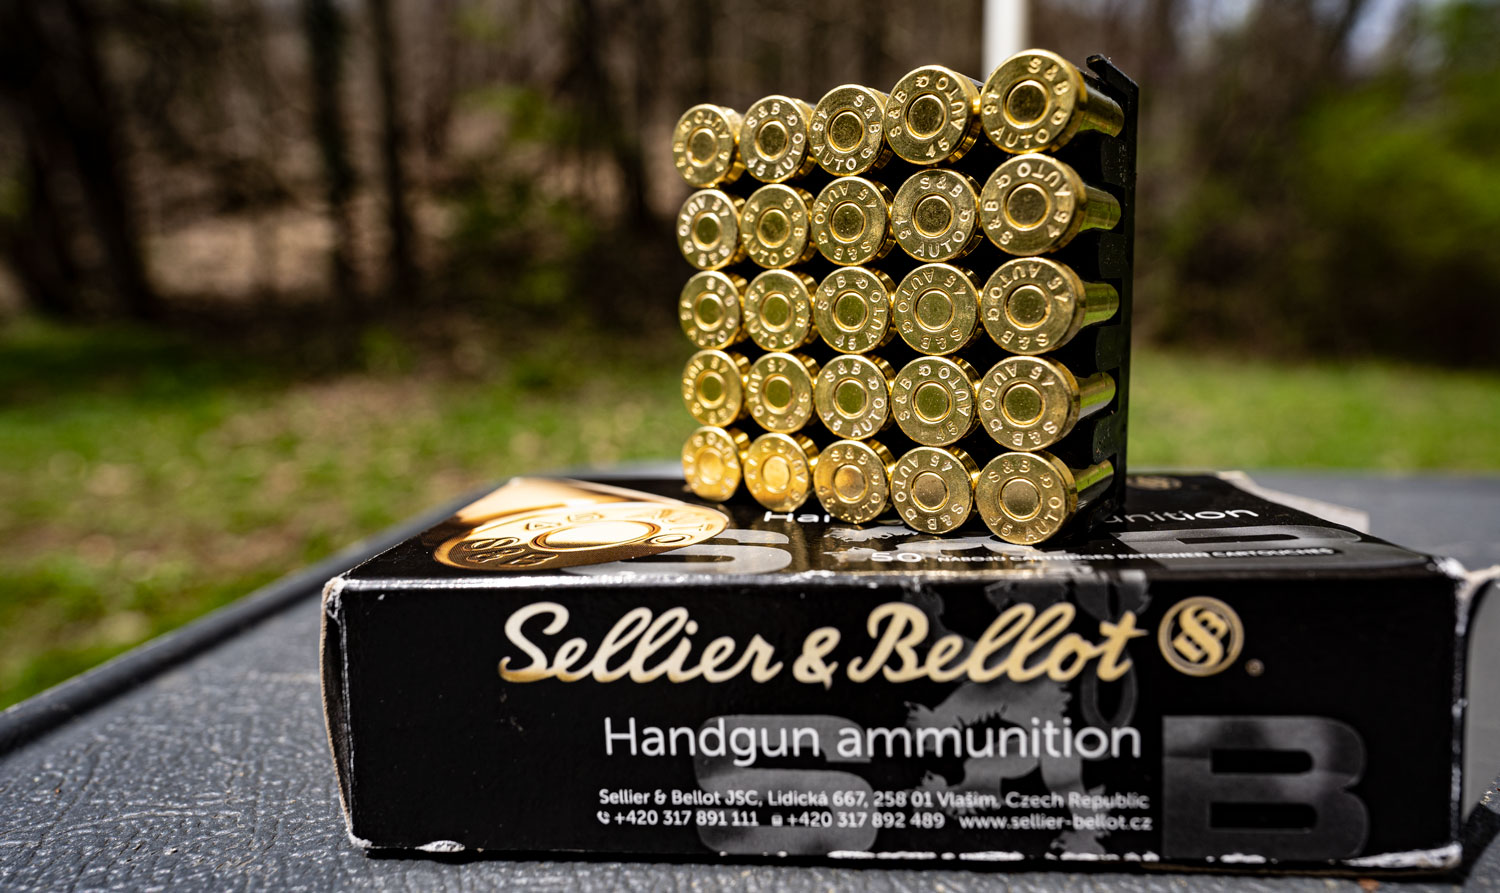 45 ACP ammo from Sellier and Bellot on a table.